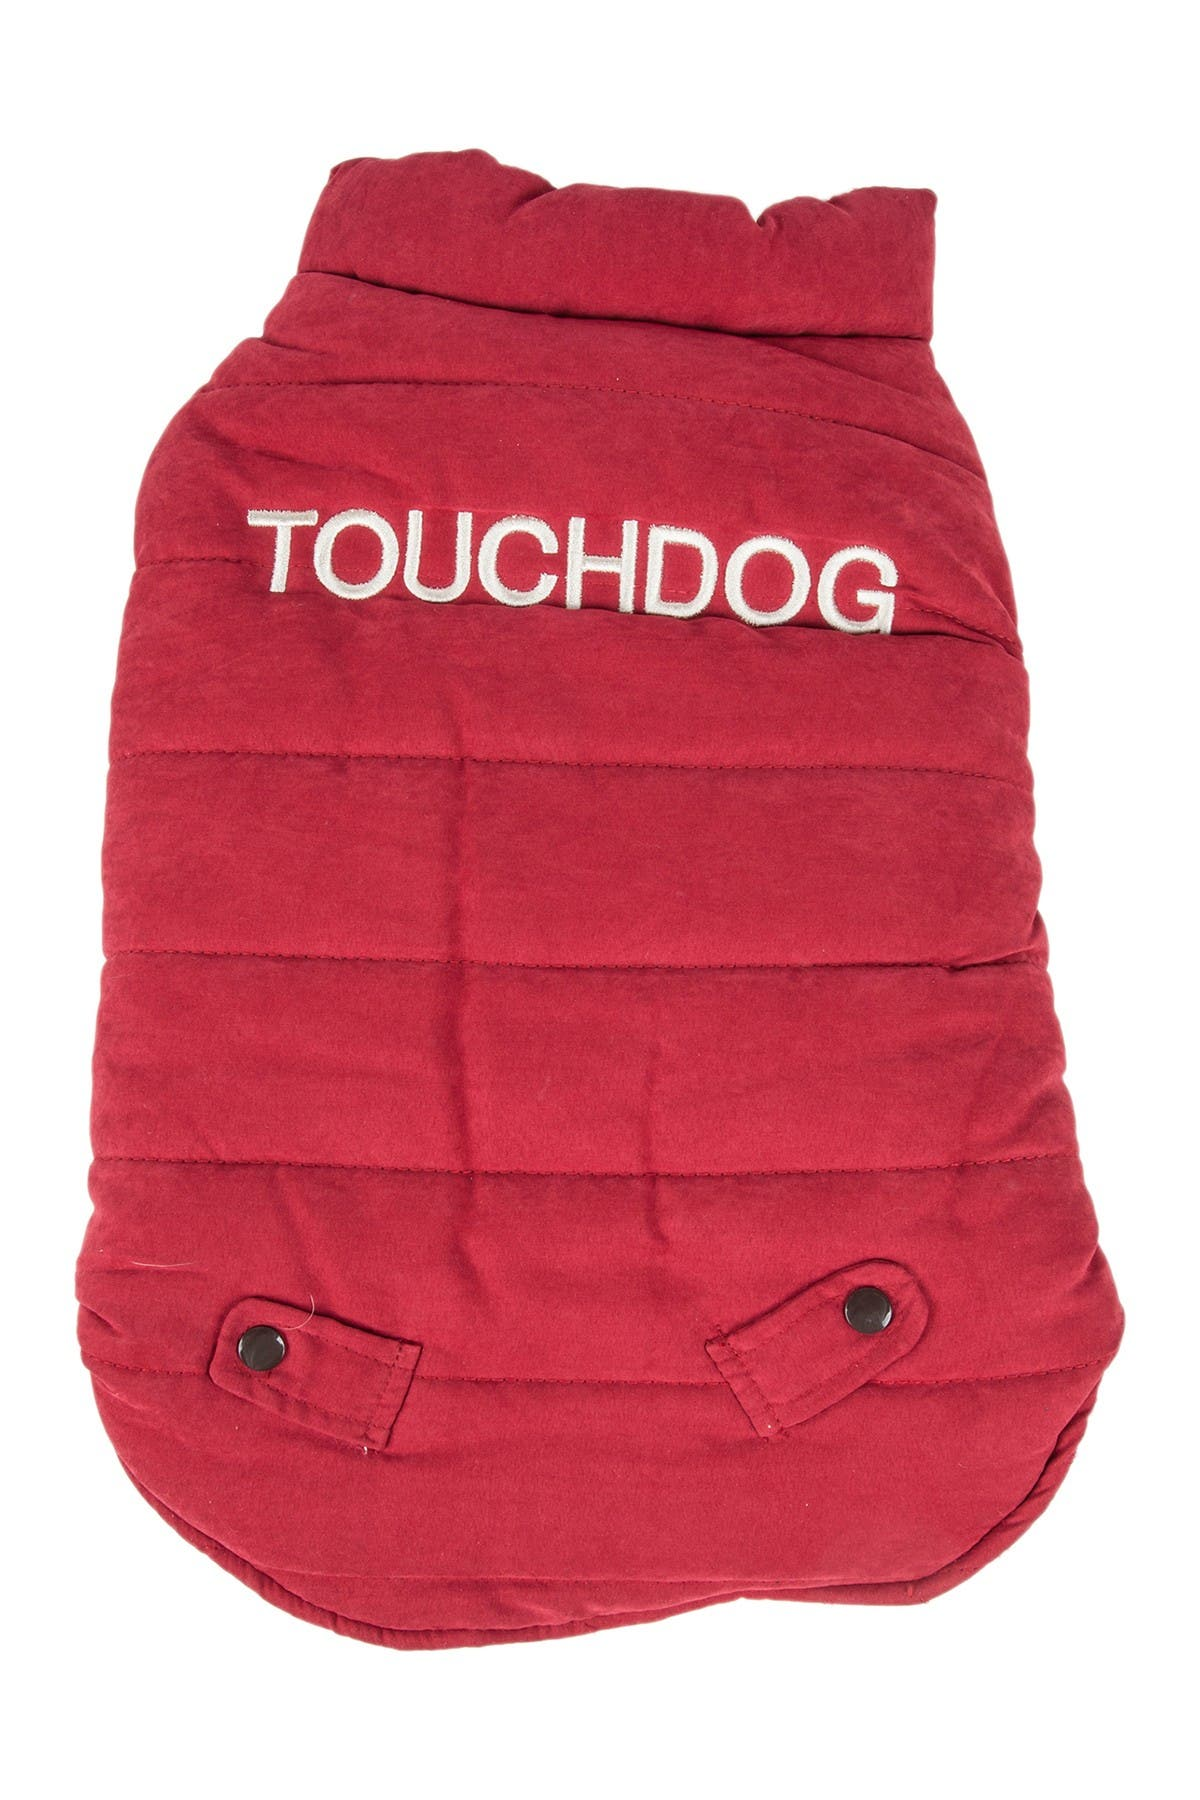 Image of PETKIT Touchdog Waggin Swag Reversible Insulated Pet Coat - Small